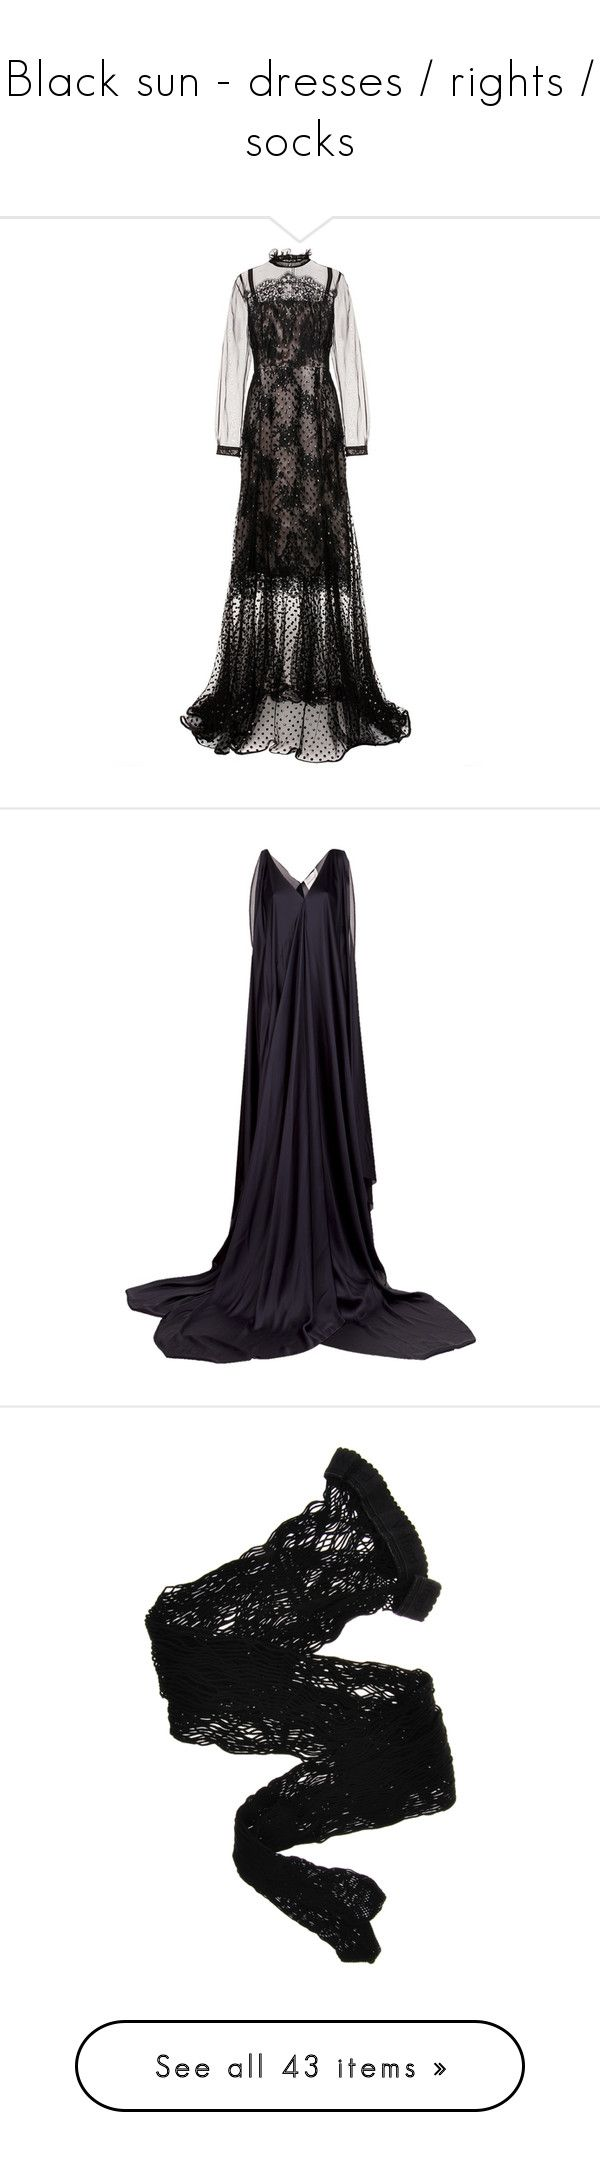 """""""Black sun - dresses / rights / socks"""" by ghosttt ❤ liked on Polyvore featuring dresses, gowns, erdem, black, cocktail/gowns, tulle ball gown, polka dot dress, holiday dresses, cocktail dresses and evening dresses"""